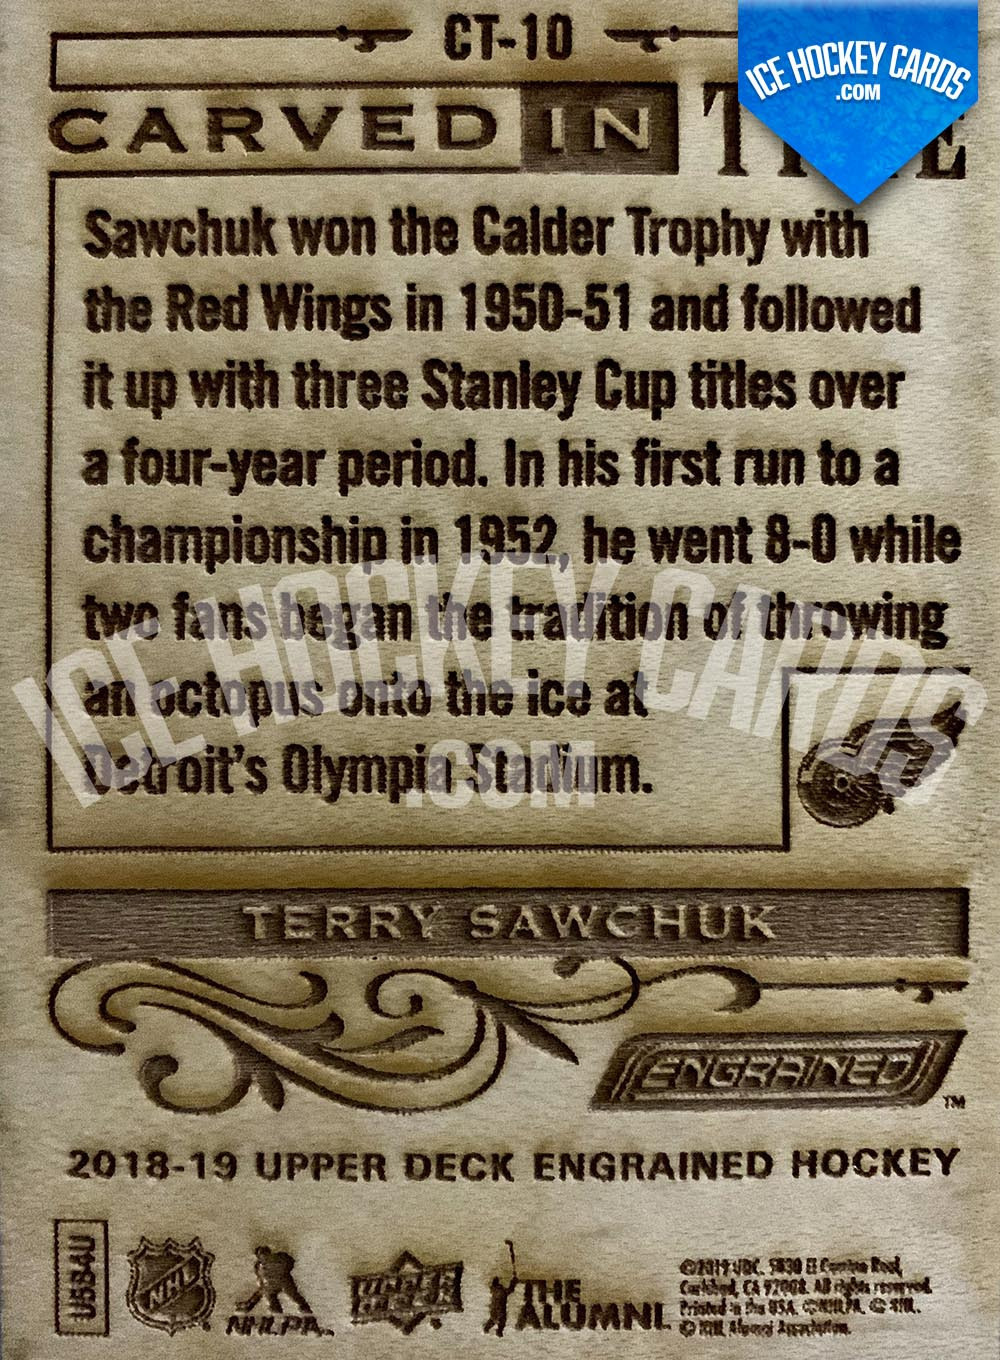 Upper Deck - Engrained 2018-19 - Terry Sawchuk Carved In Time Wooden Card RARE back